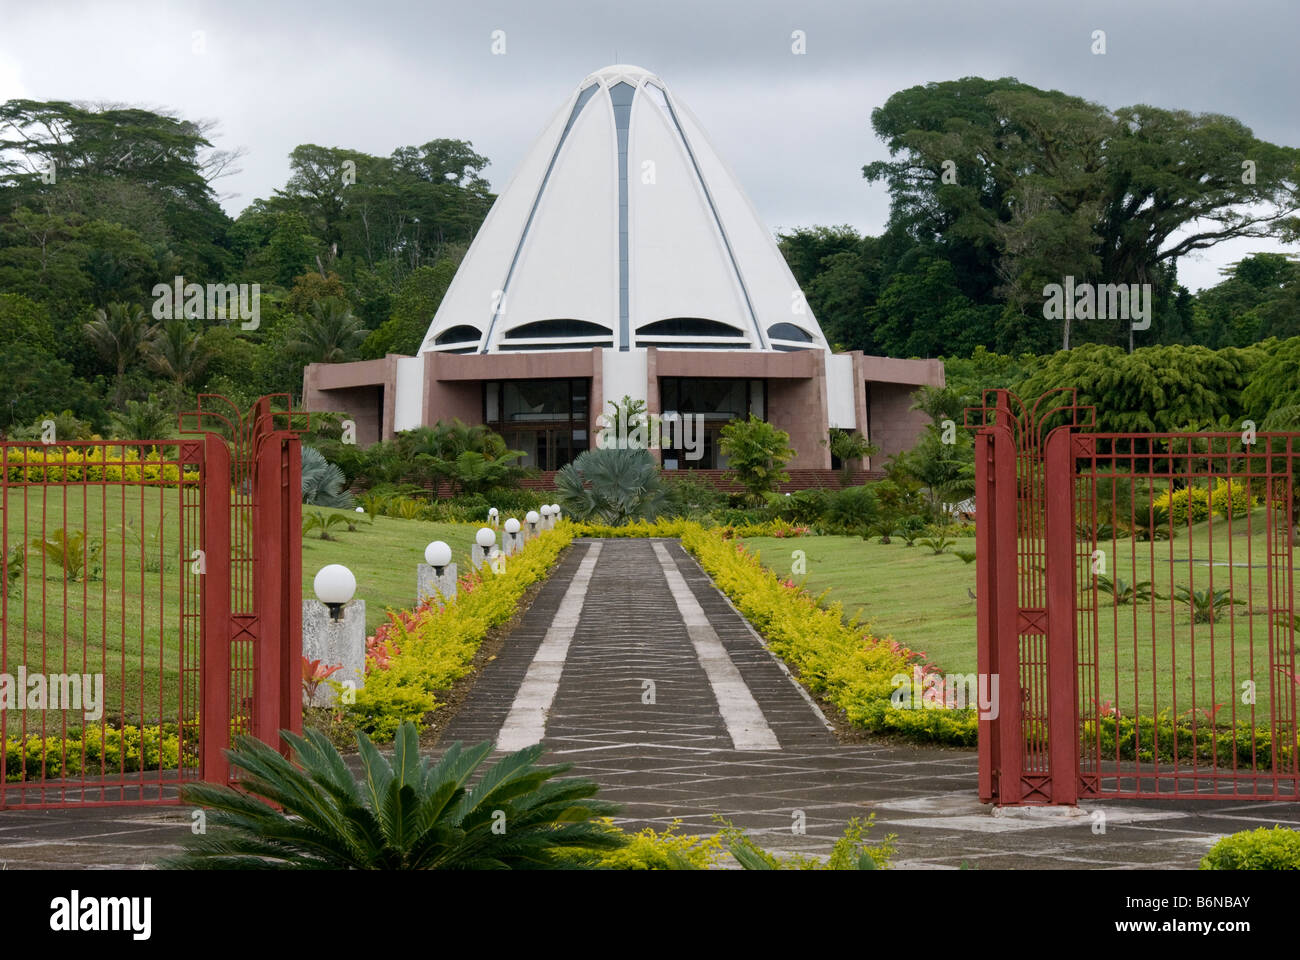 Bahai House of Worship near Apia Samoa - Stock Image